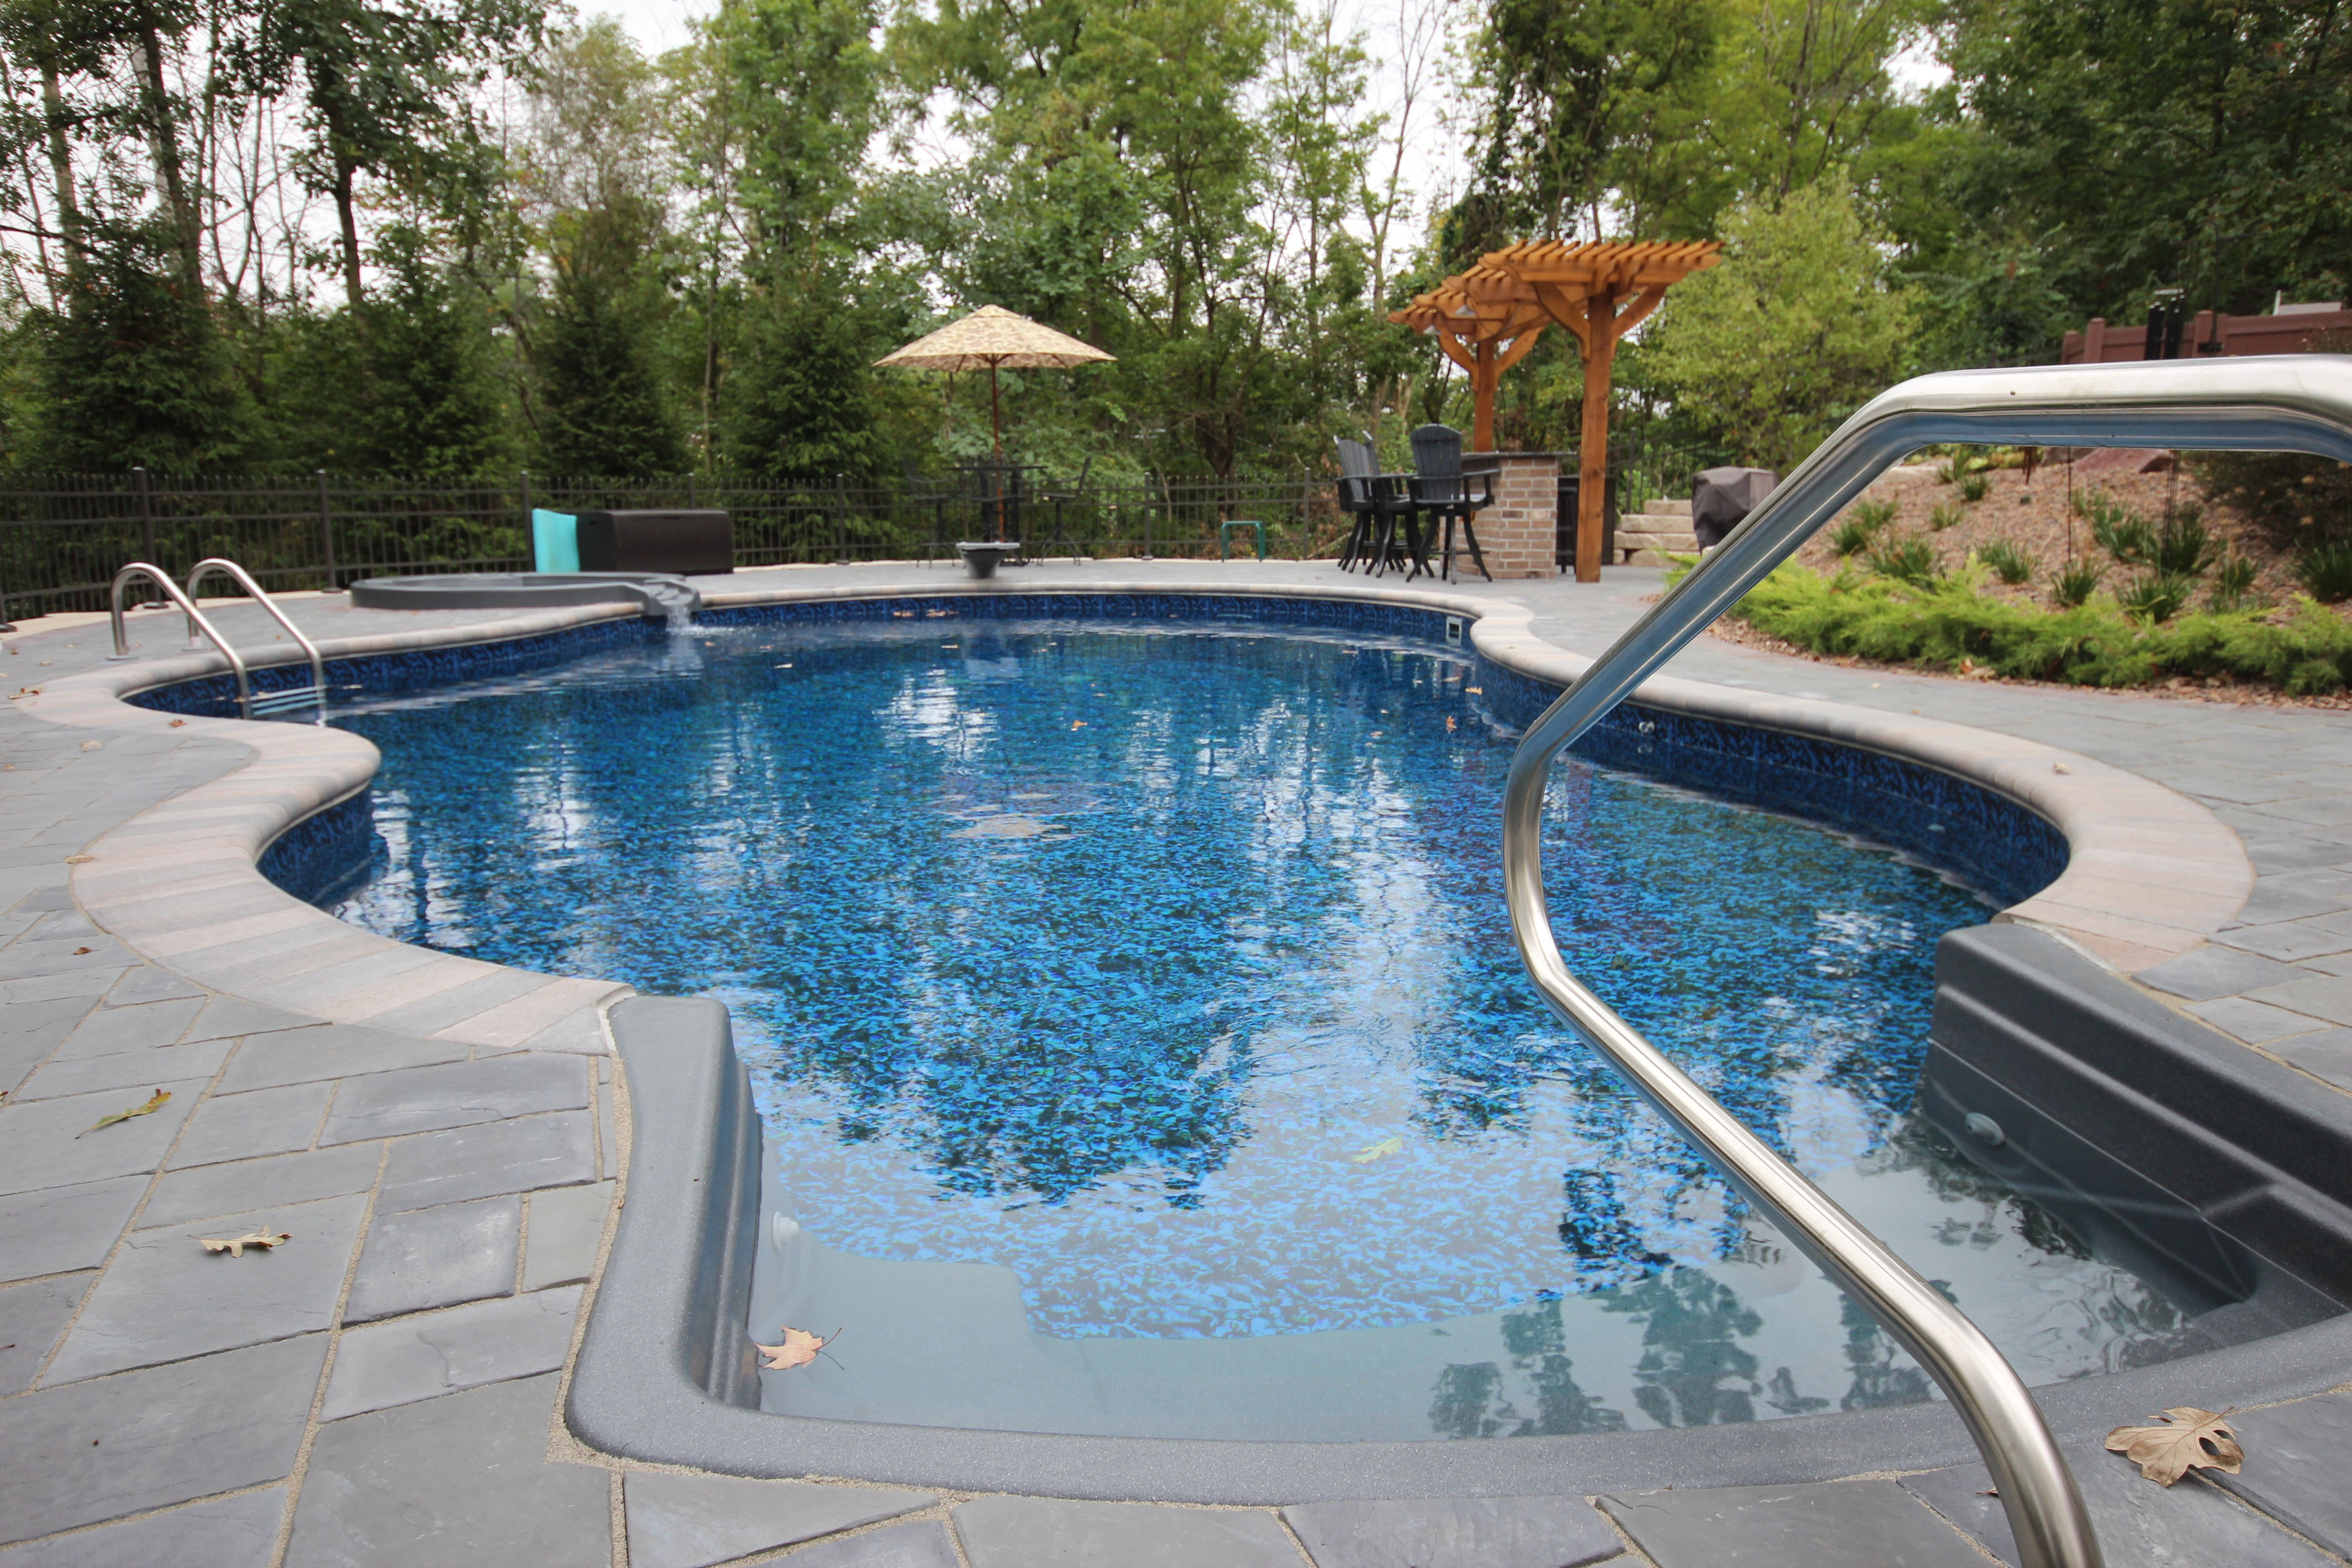 This Pool Is A 22 X 37 Mountain Lake With Steel Walls And A Vinyl Liner